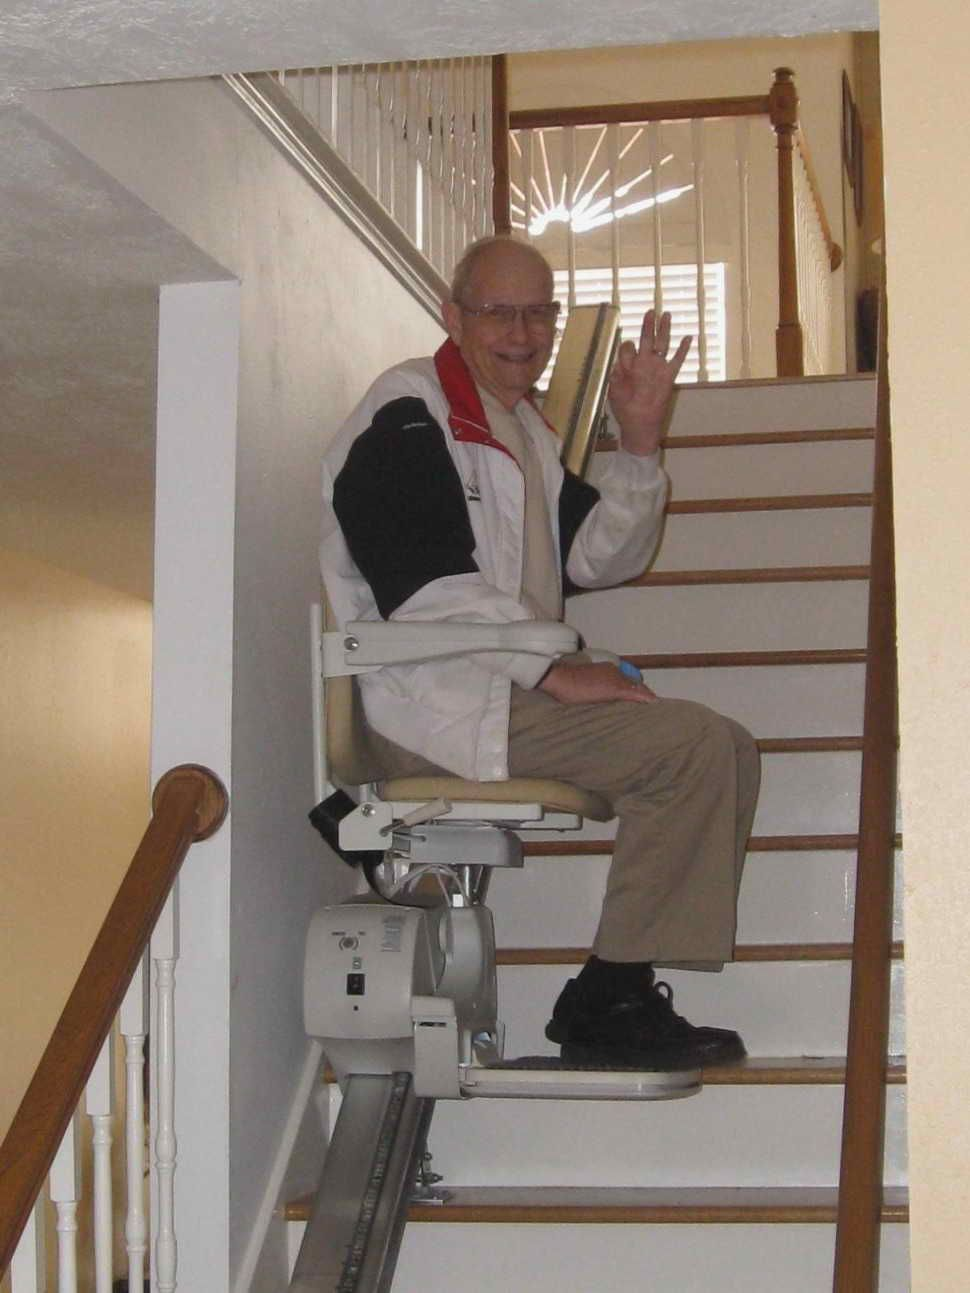 Stair Chair Lift Prices Price Of Chair Lift For Stairs Chairs Buying Guide Pinterest